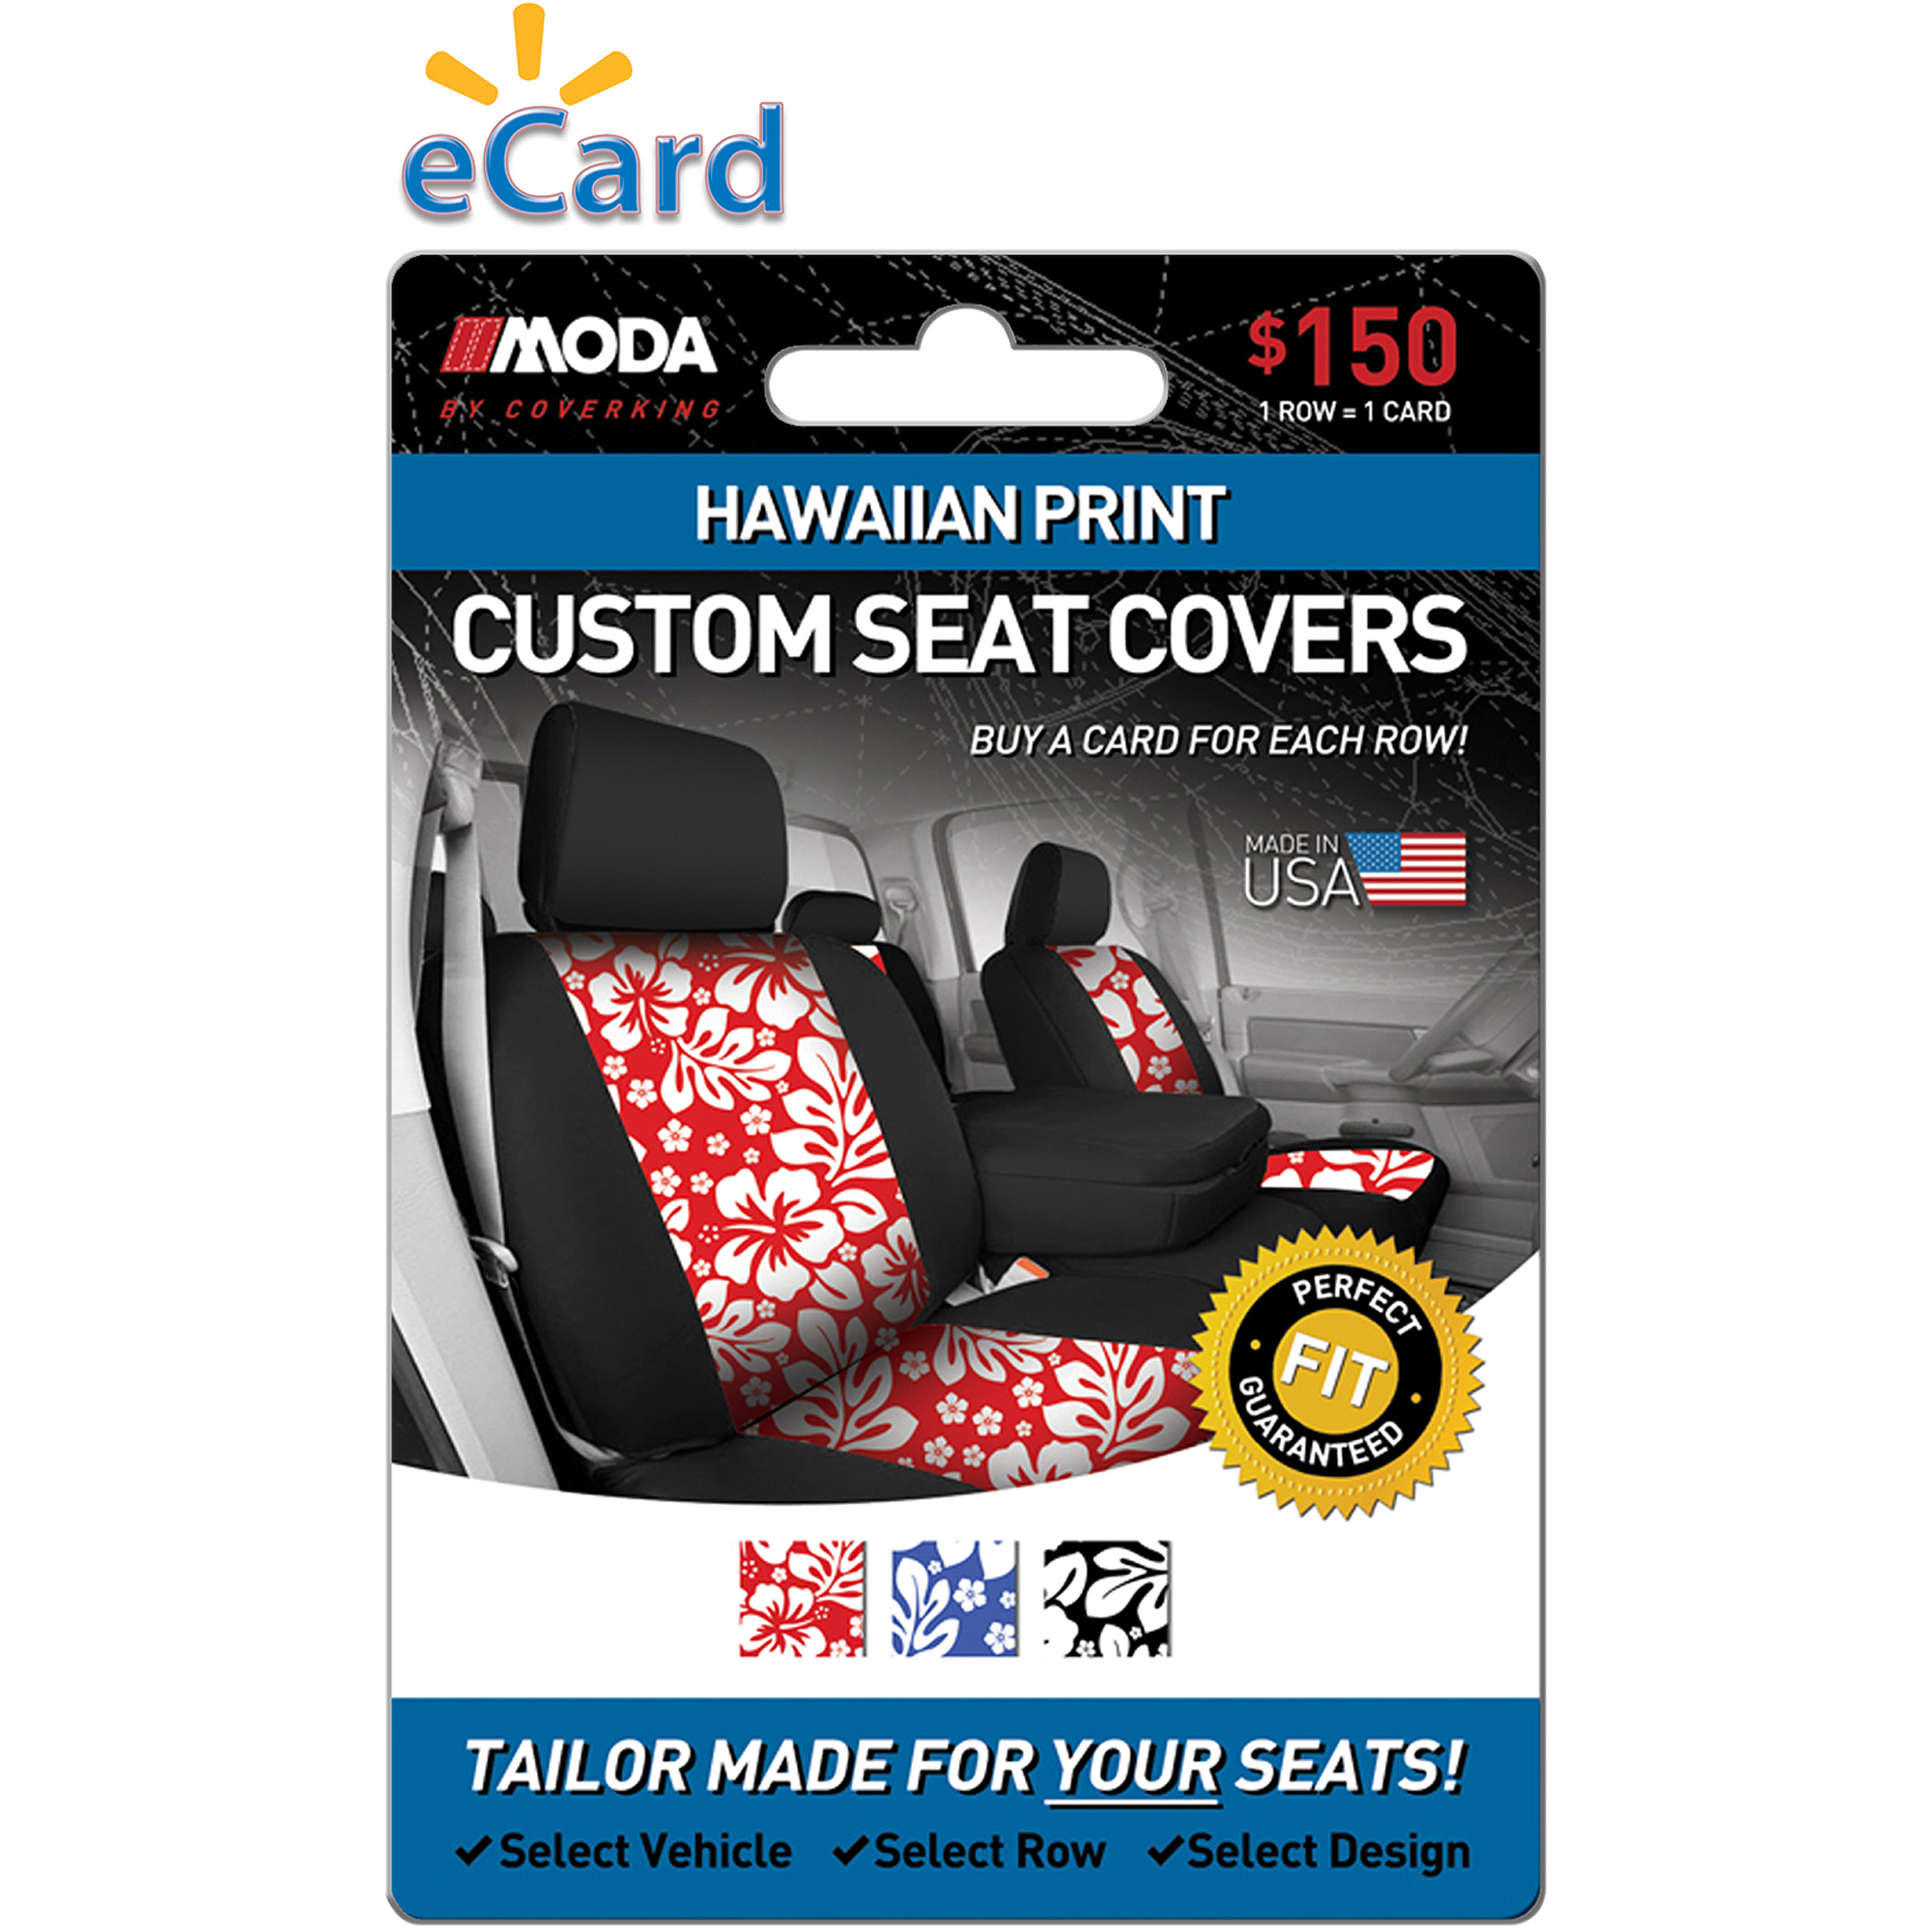 MODA by Coverking Designer Custom Seat Covers Hawaiian $150 (Email Delivery)